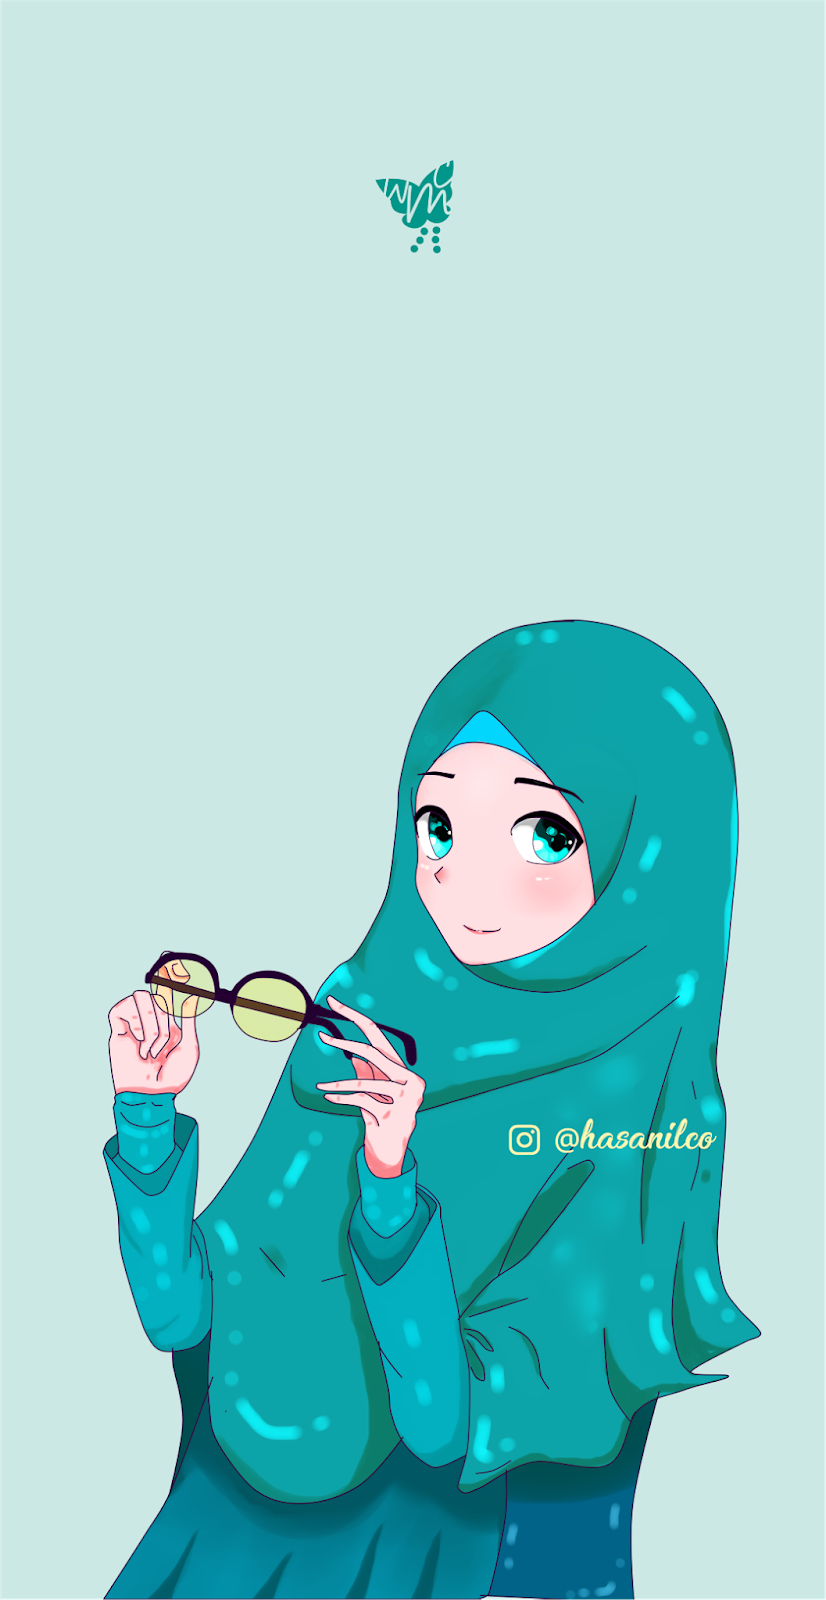 After That You Can Download This Wallpaper For Free - Download Gambar Kartun Muslimah , HD Wallpaper & Backgrounds